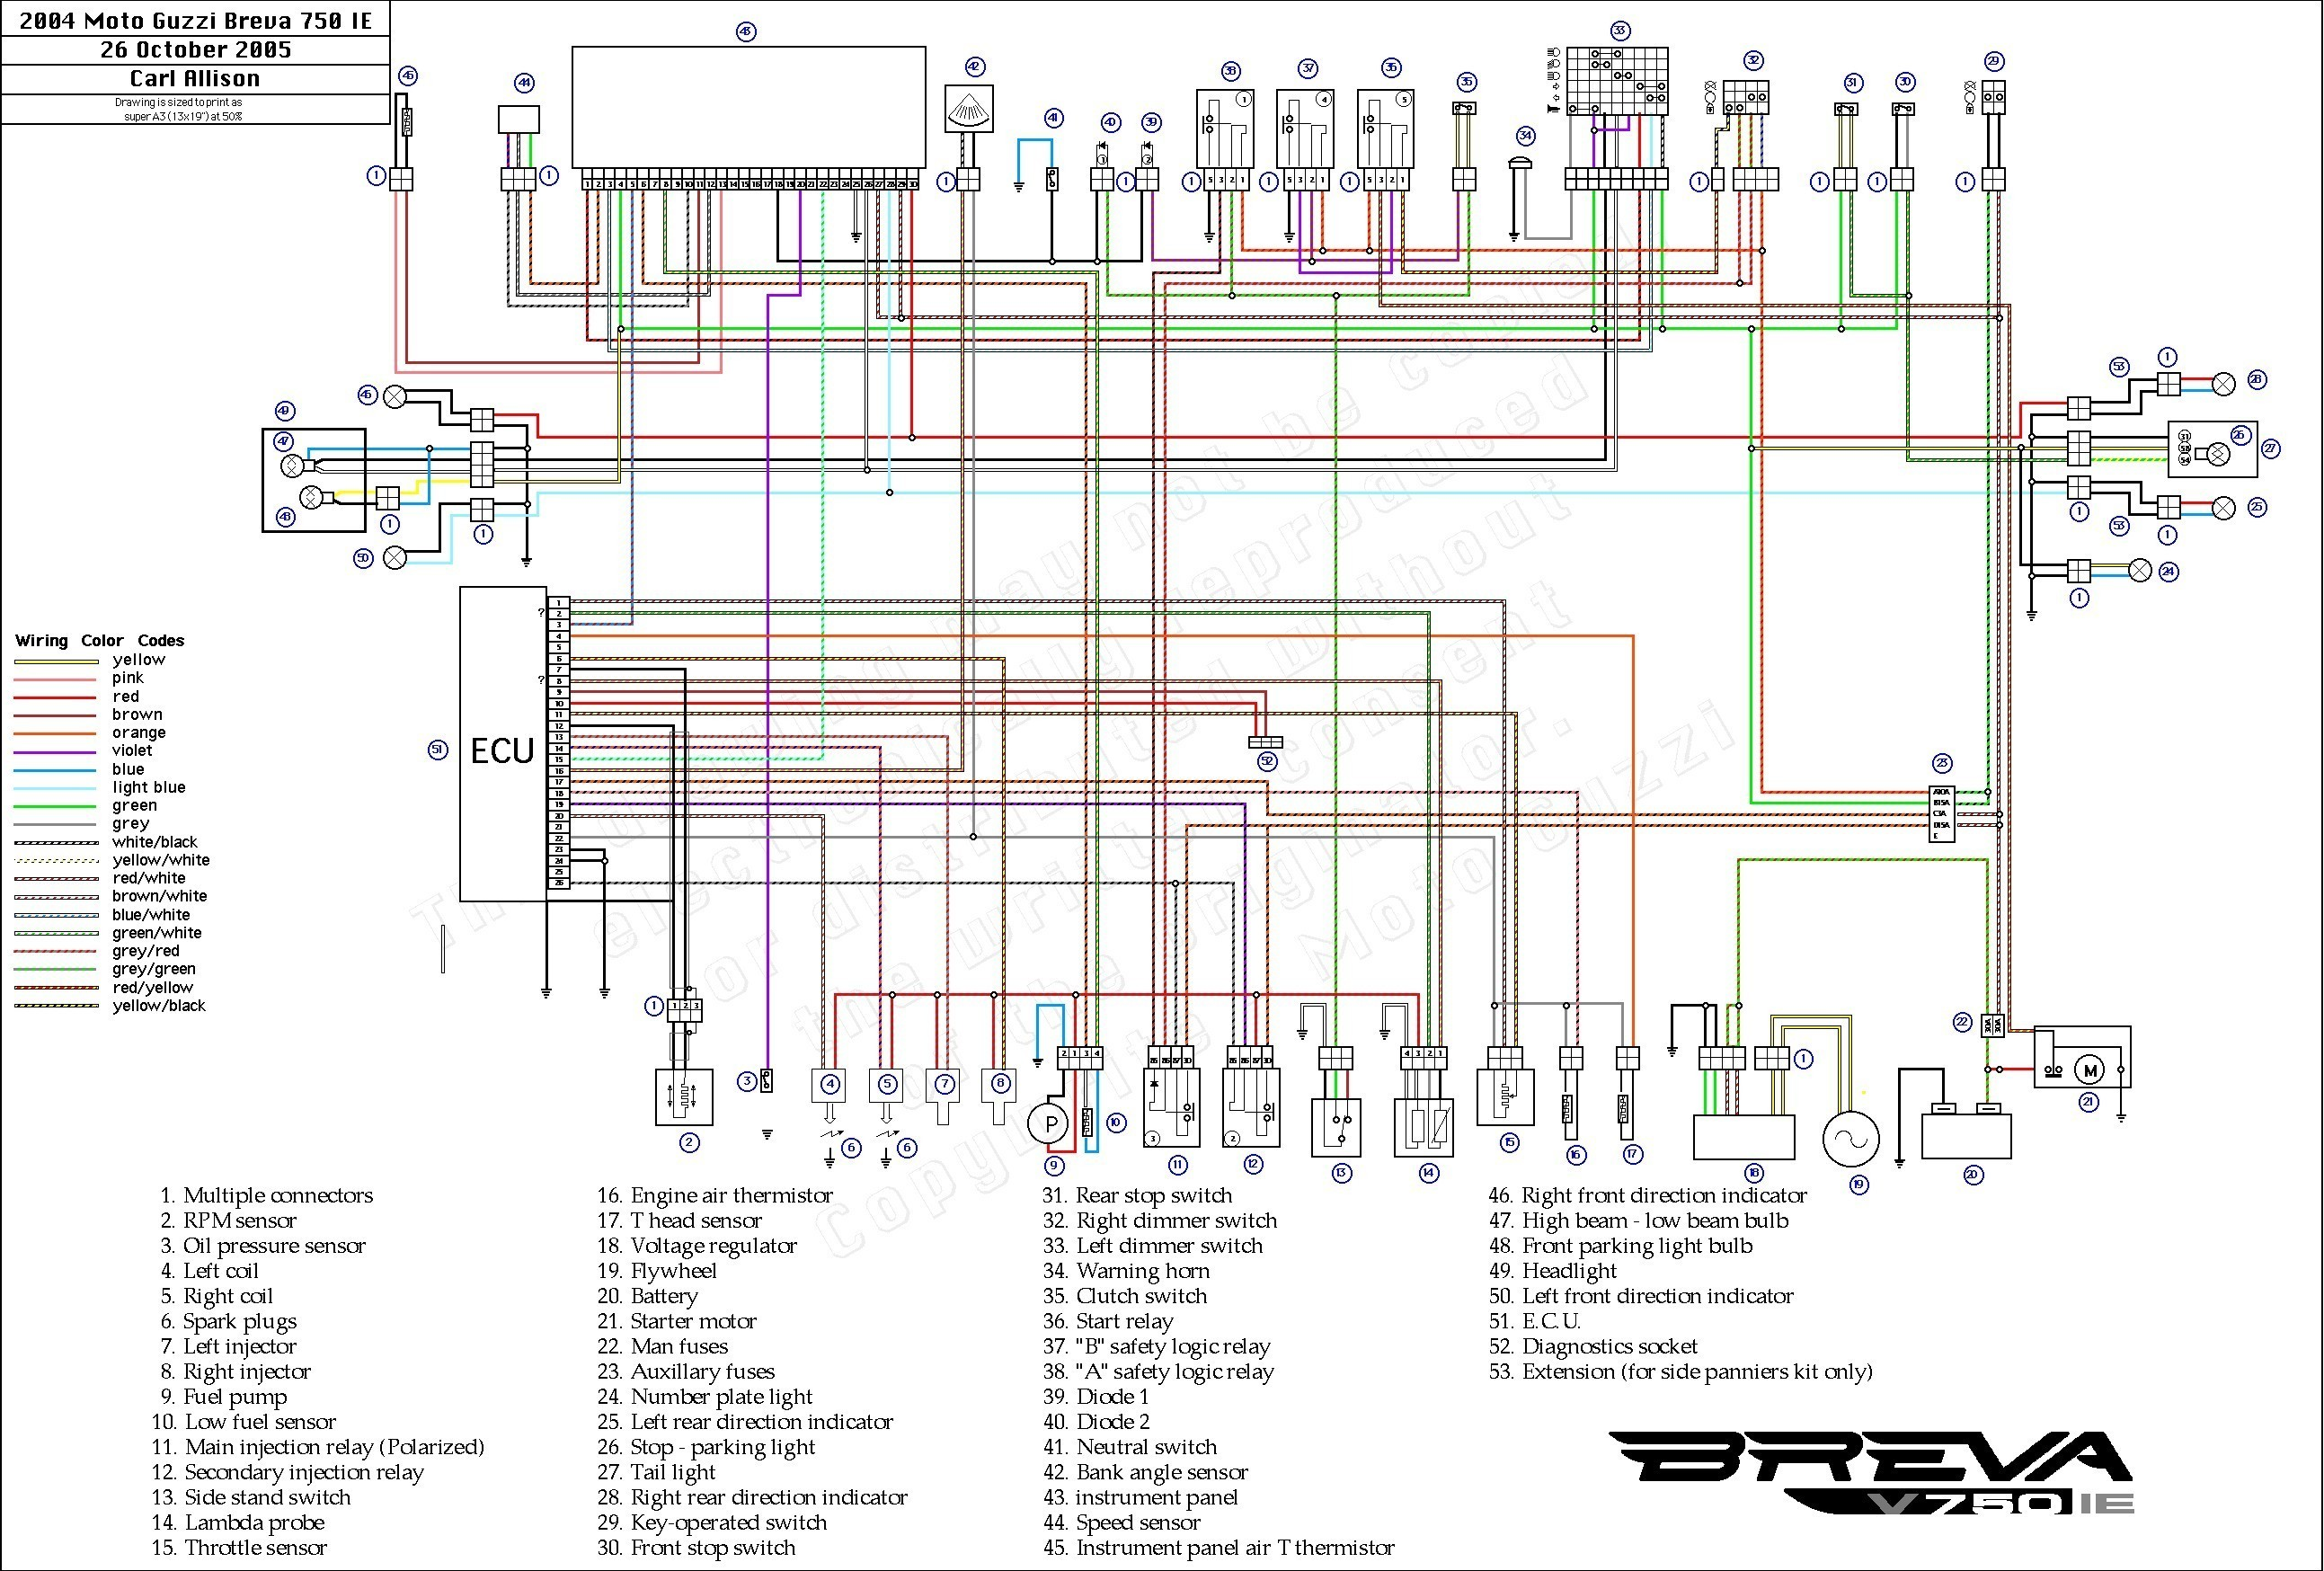 Dodge Neon Engine Diagram 2002 Dodge 2 0l Engine Diagram Data Wiring  Diagrams • Of Dodge